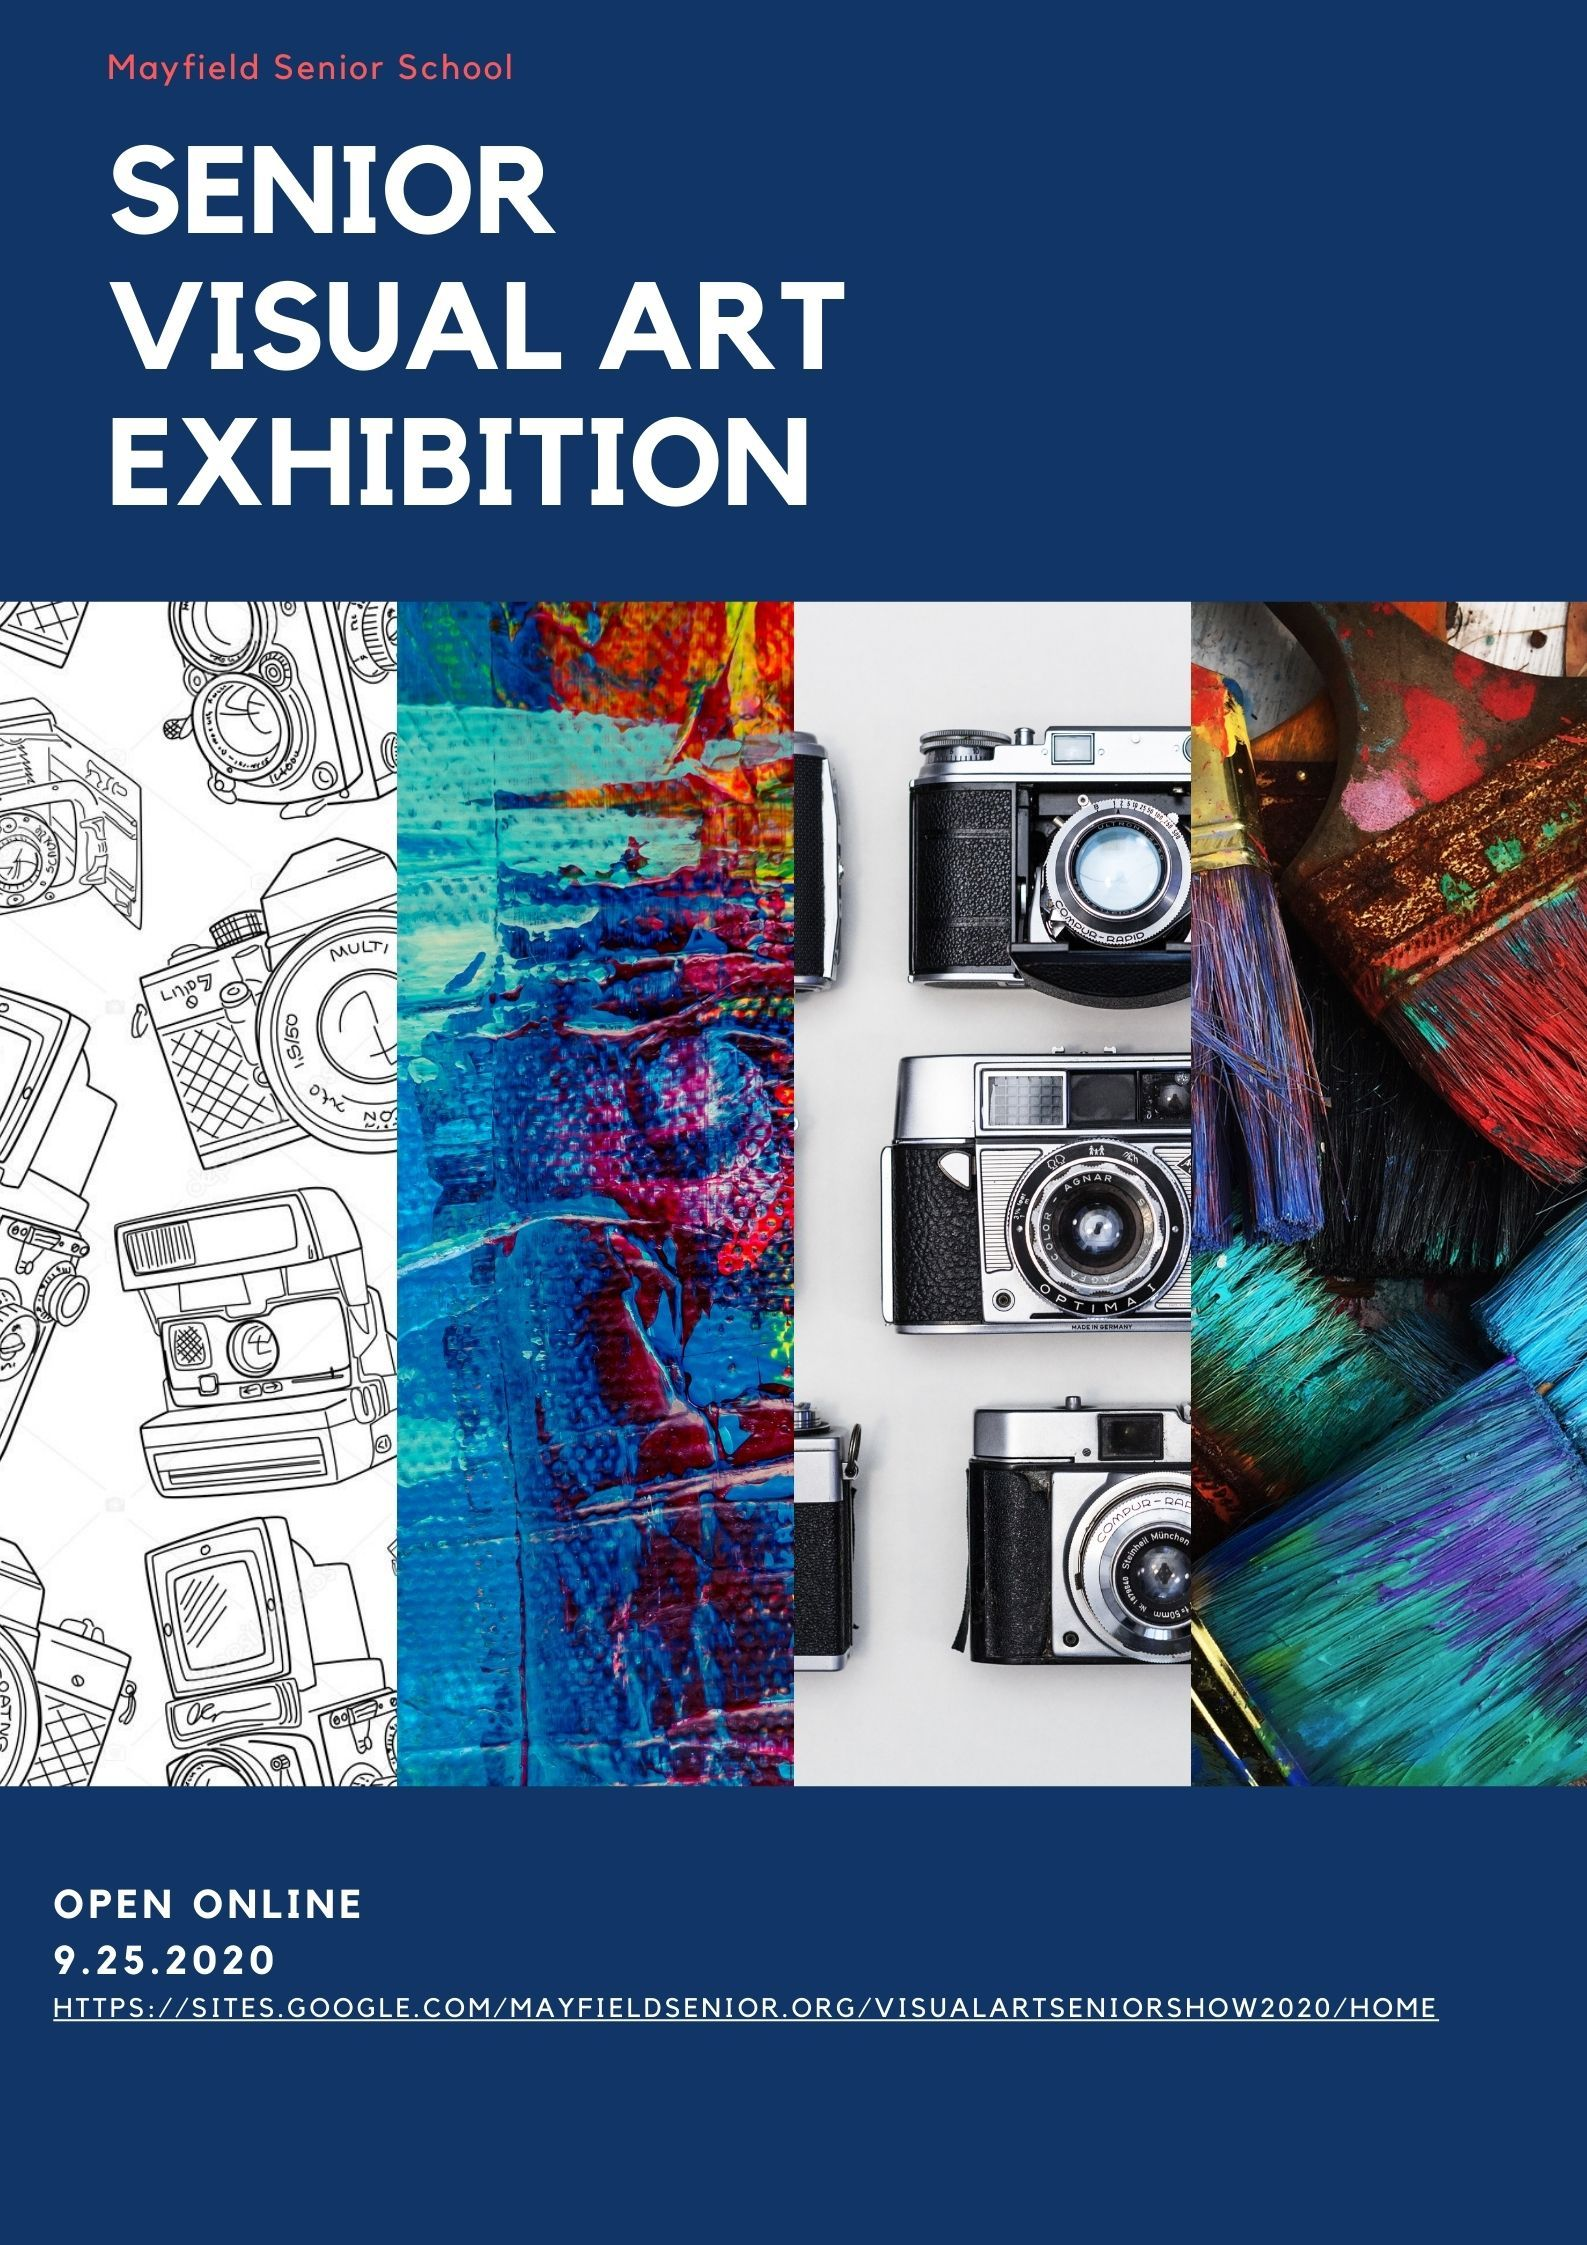 Visit the Senior Visual Arts Exhibition!